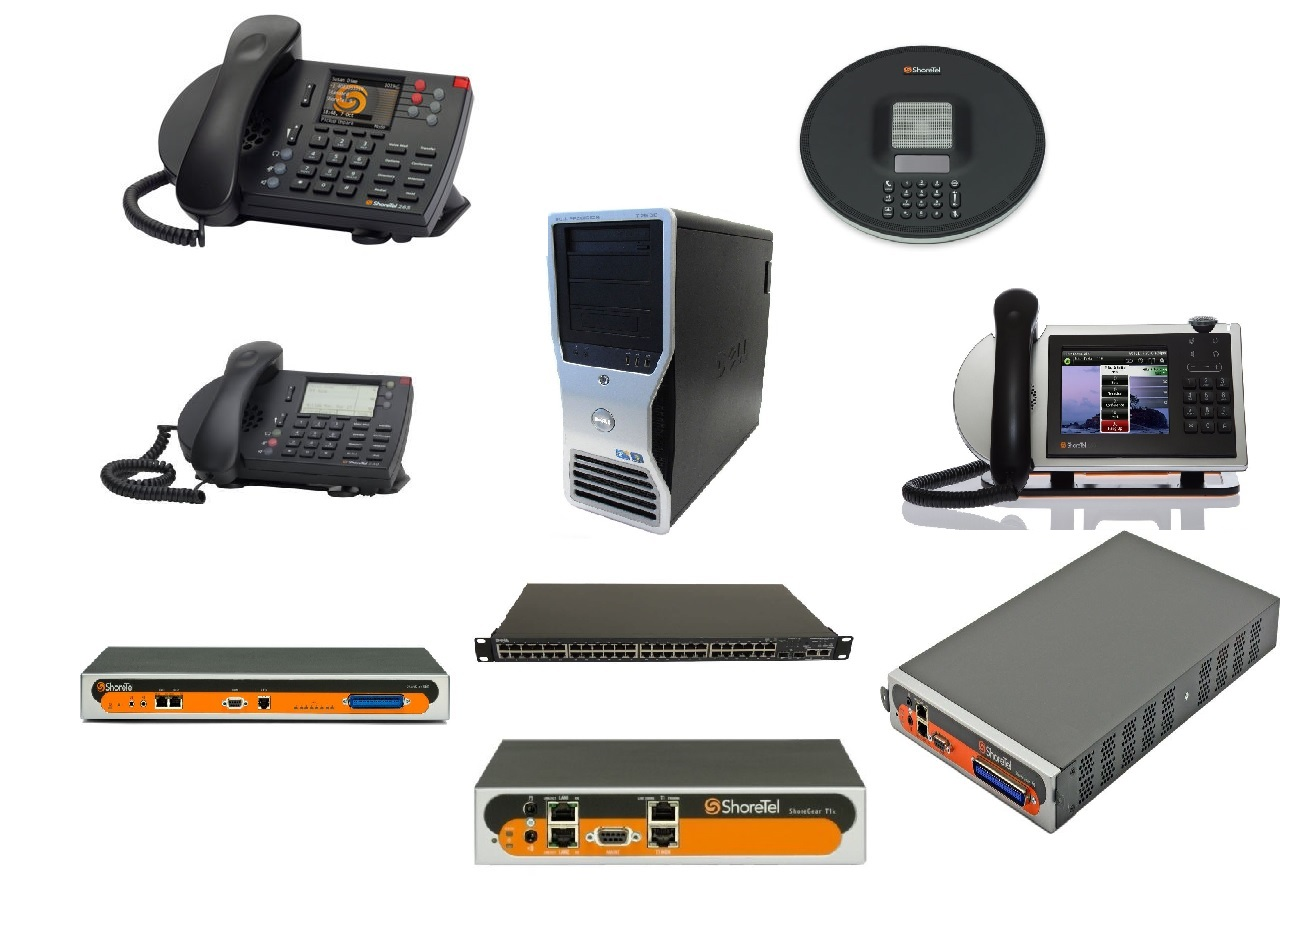 ShoreTel phone system deployment